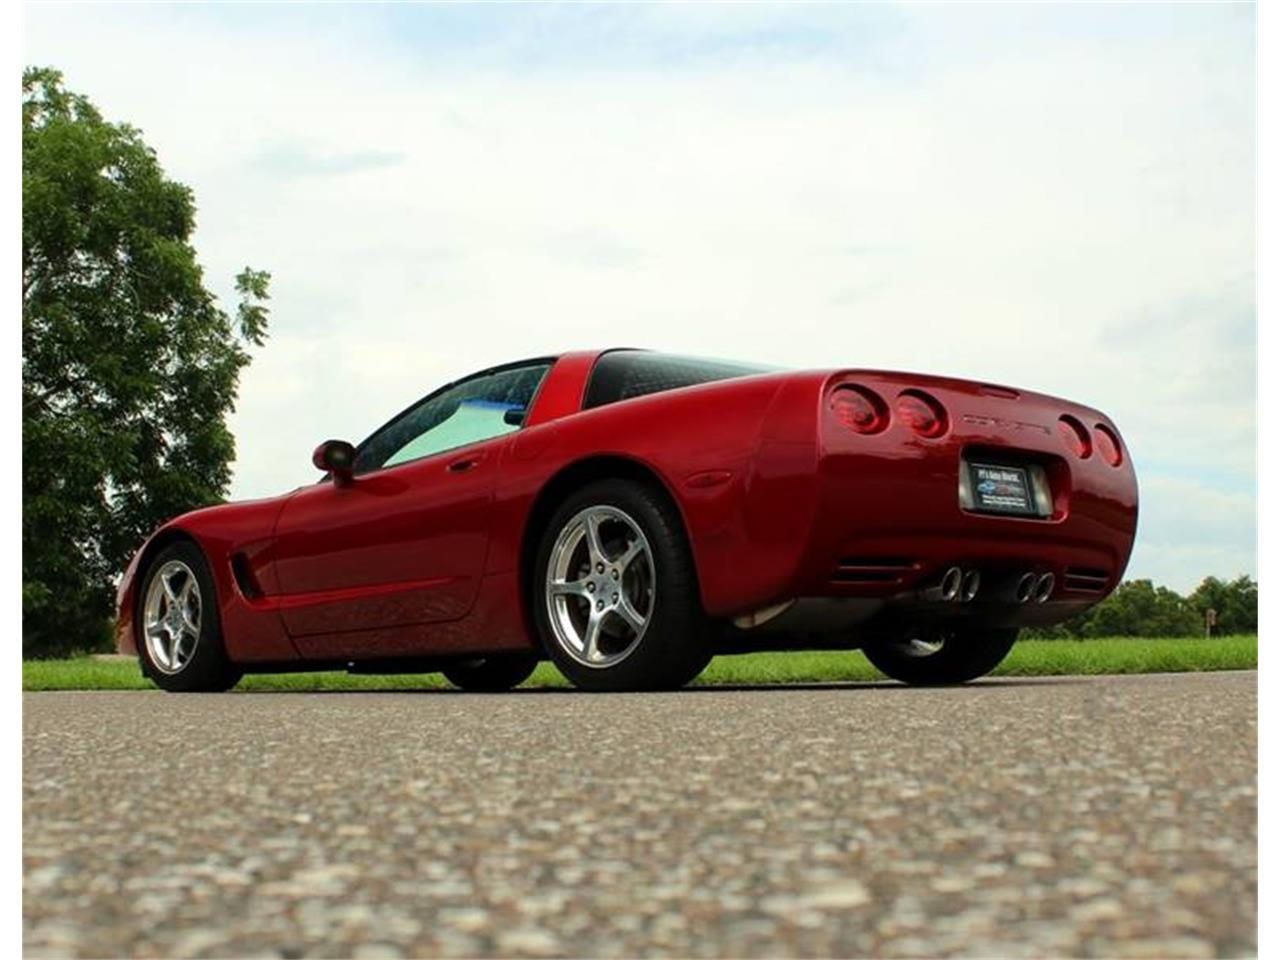 Large Picture of '04 Chevrolet Corvette located in Clearwater Florida - $13,900.00 Offered by PJ's Auto World - QCZ4